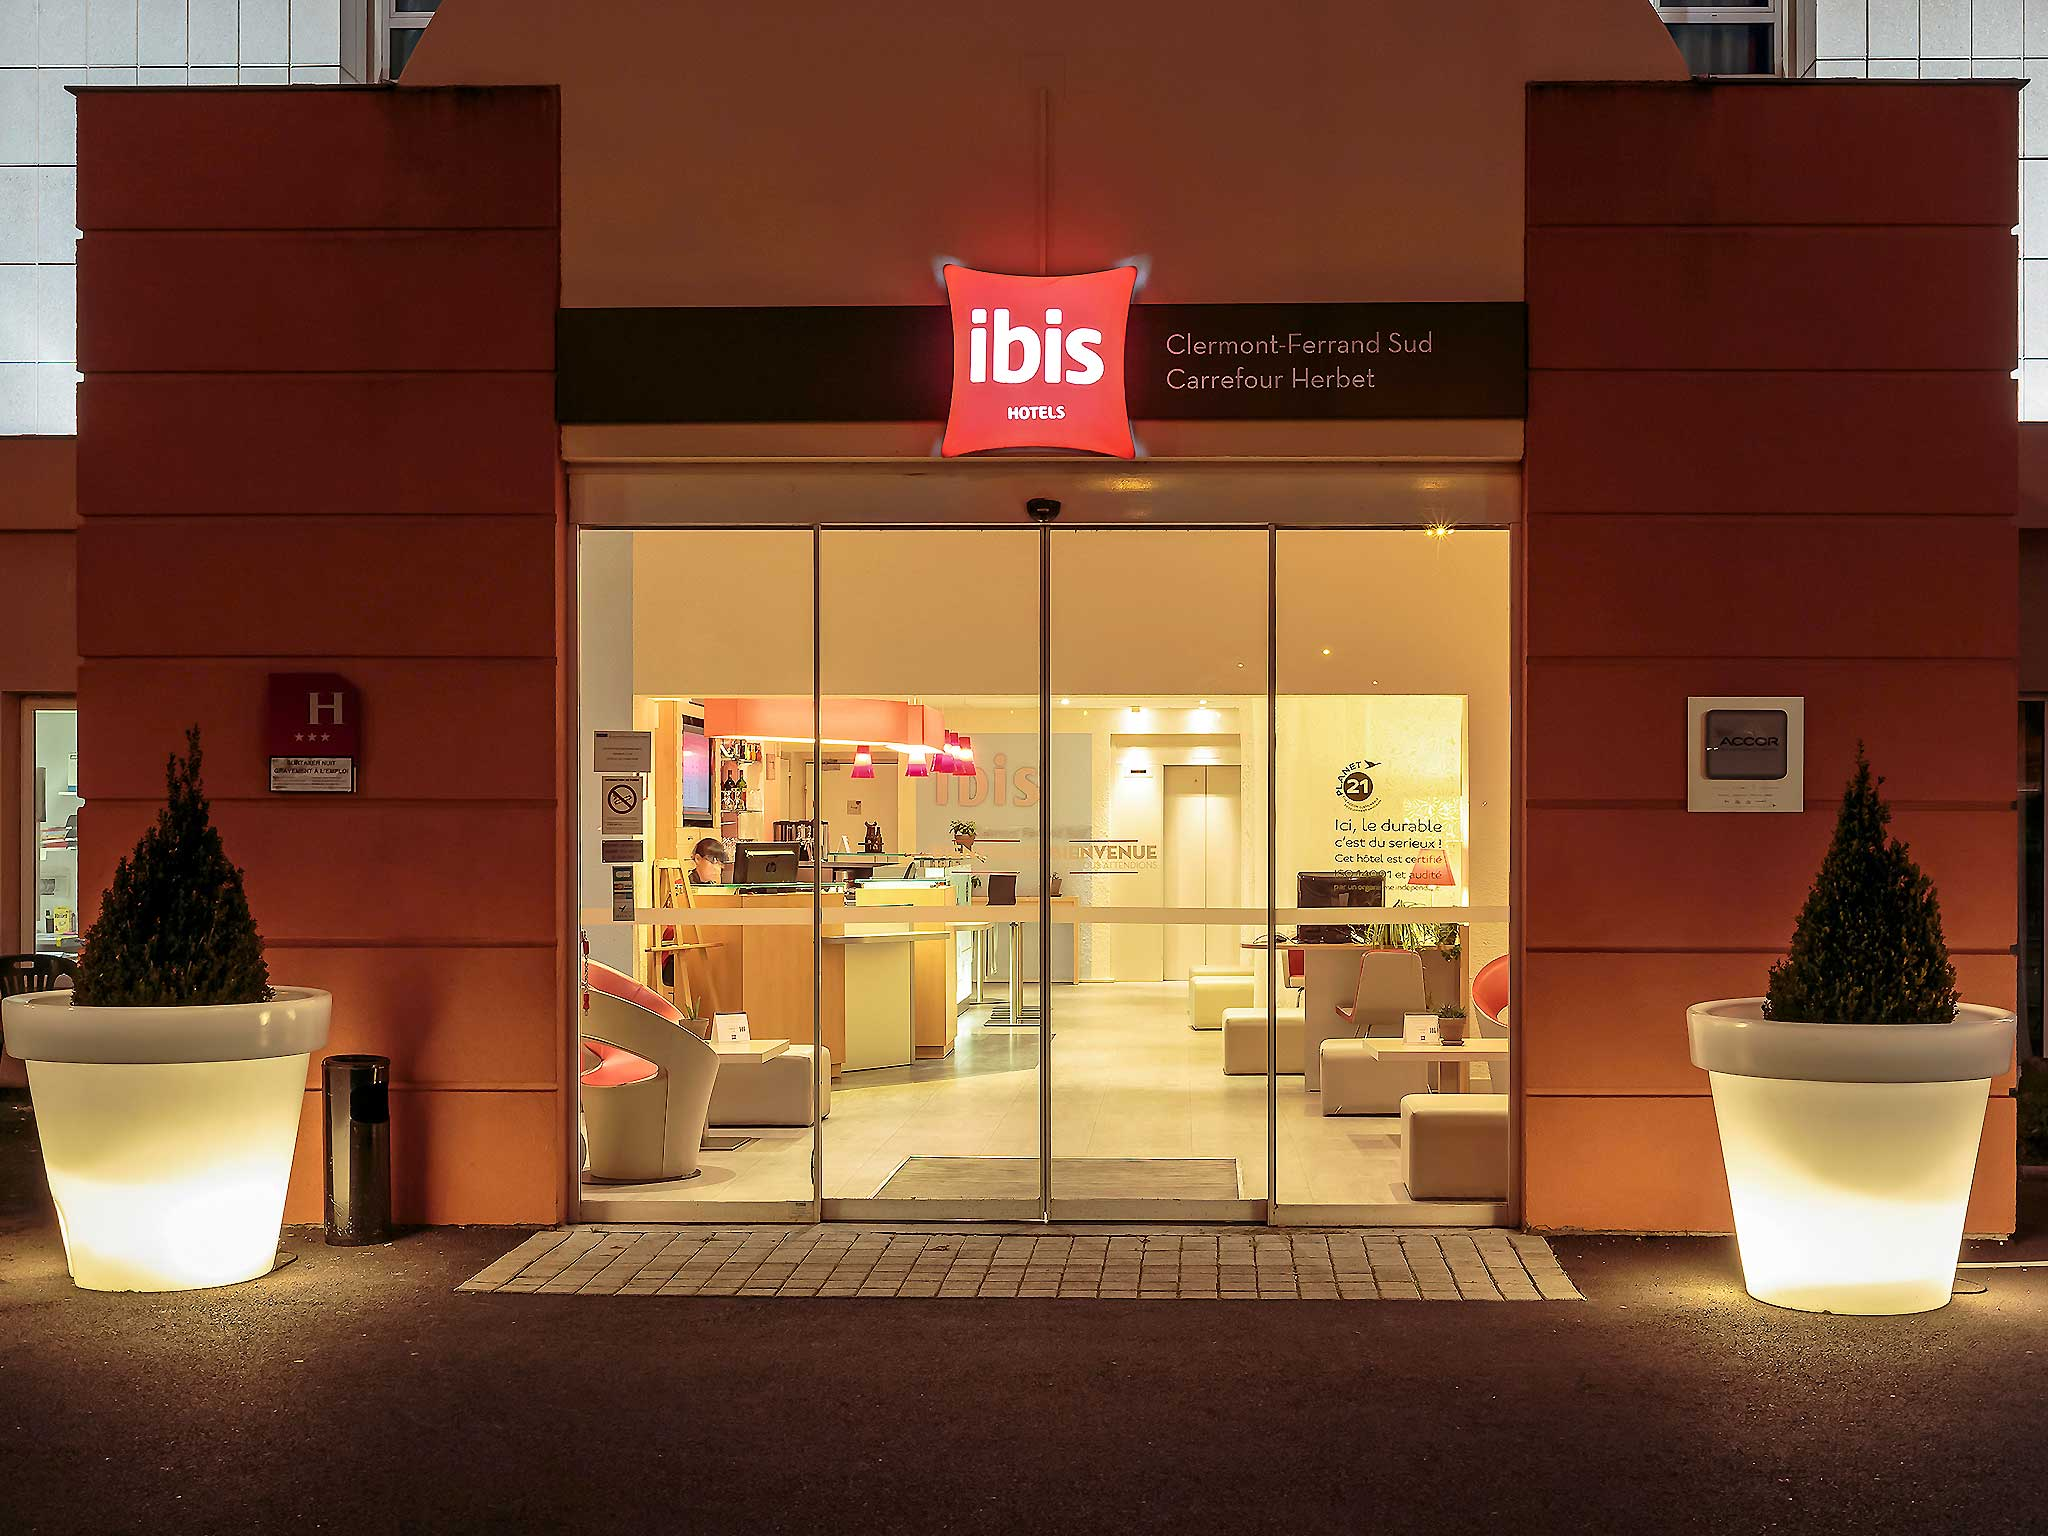 Hotel - ibis Clermont Ferrand Sud Carrefour Herbet